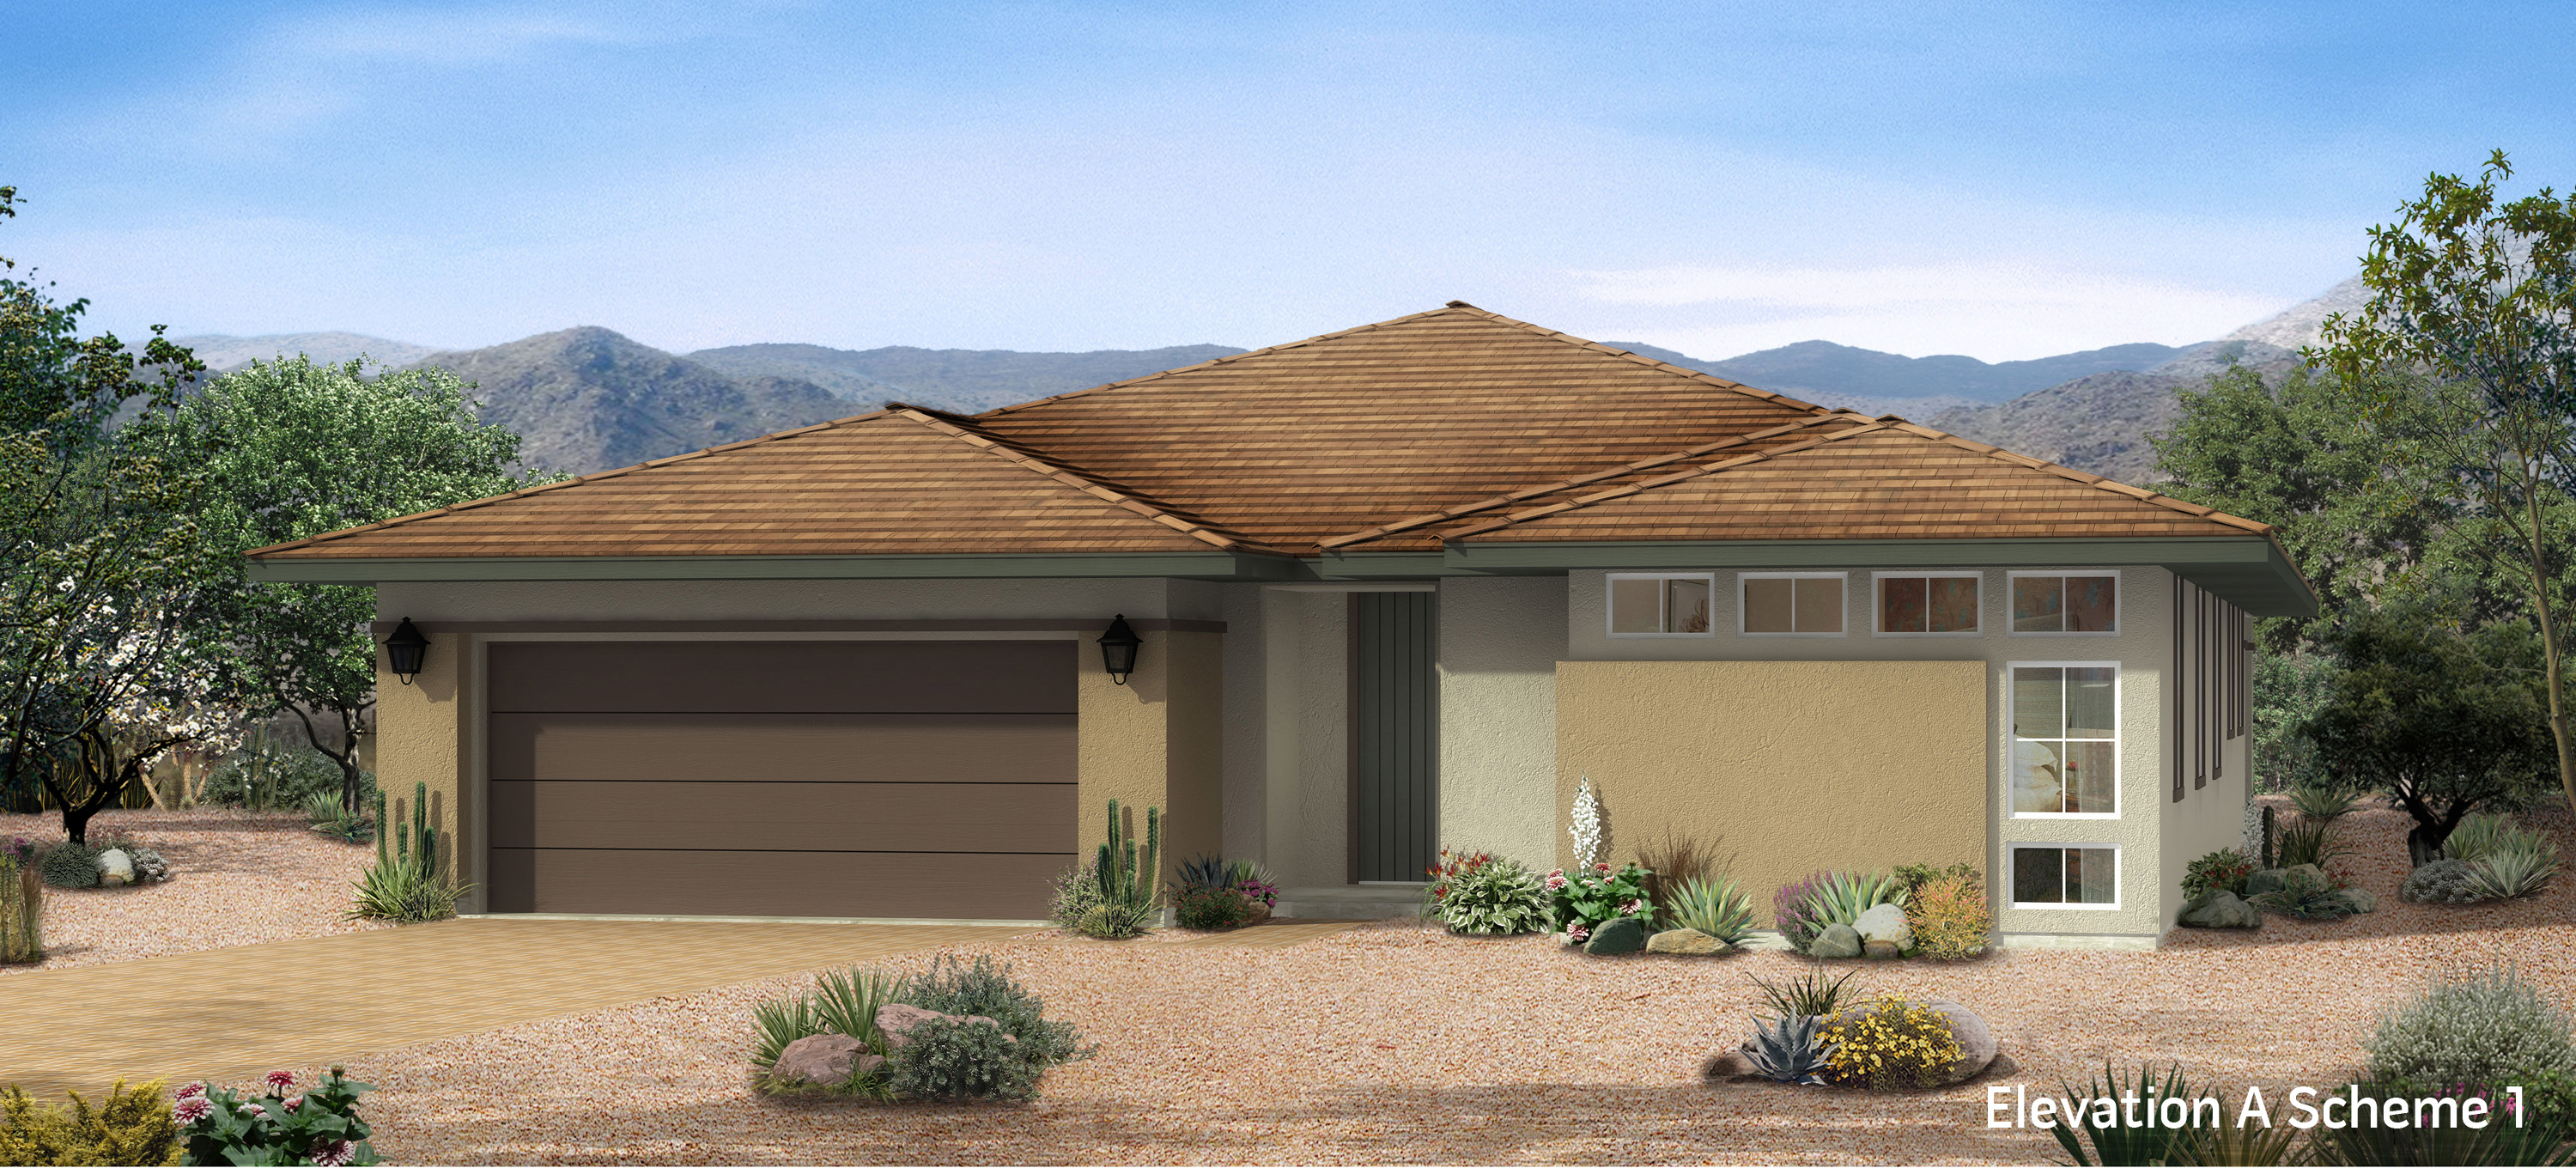 Single story model homes las vegas